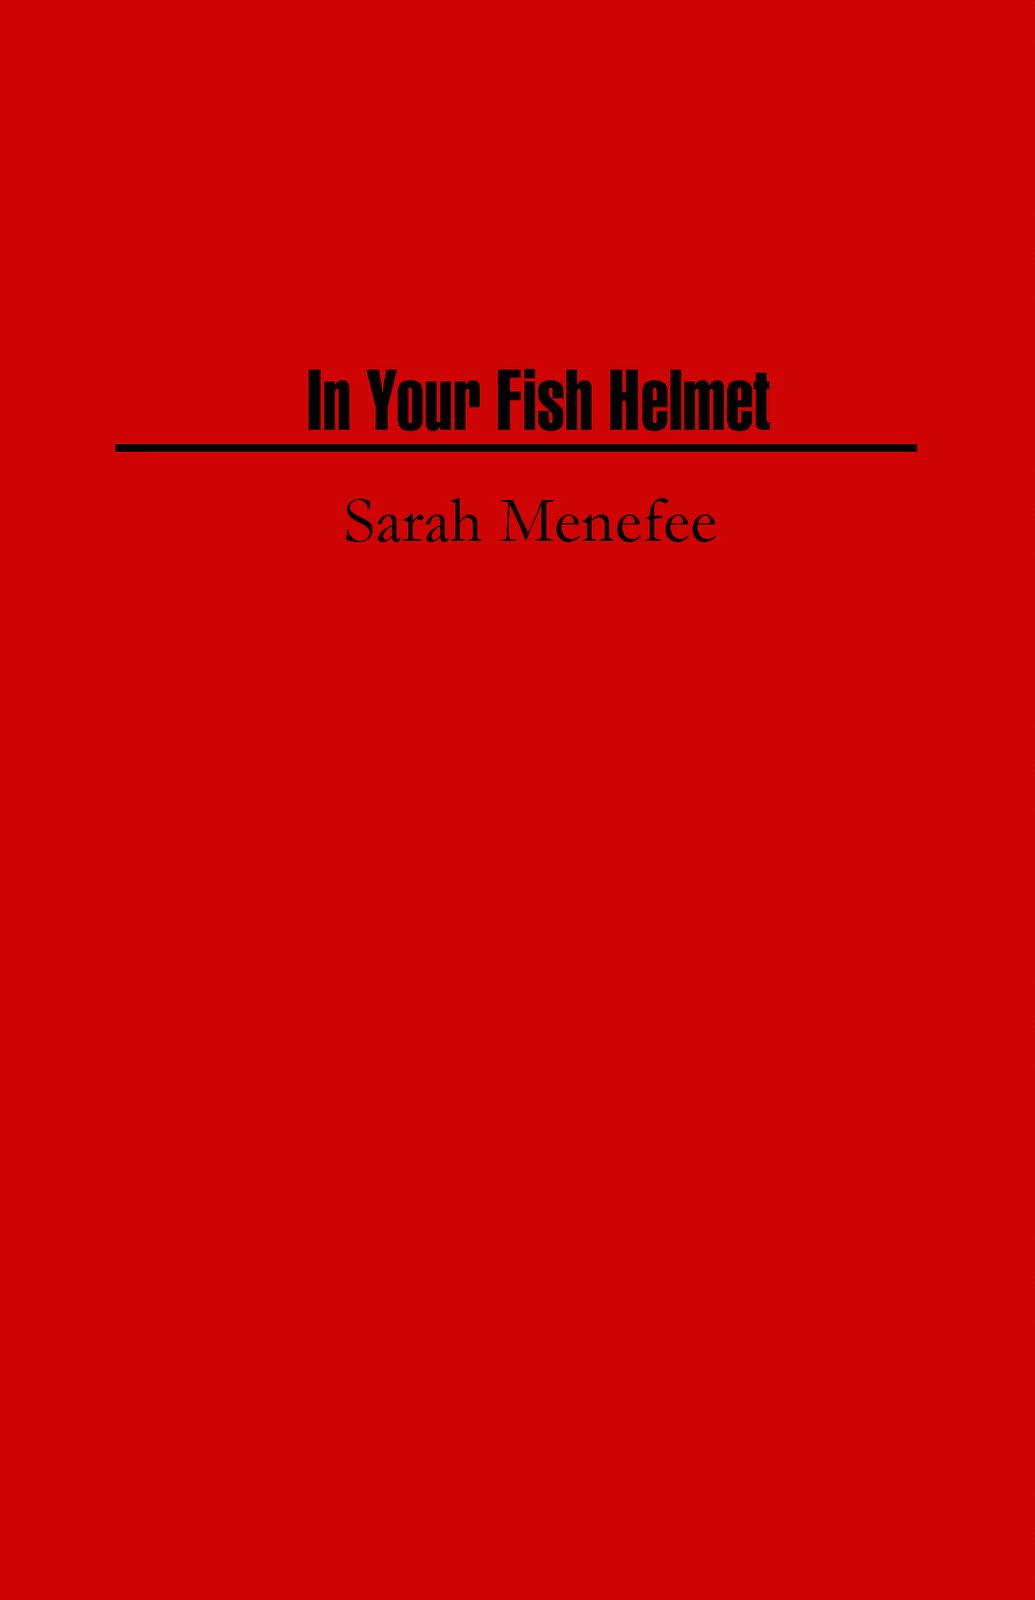 In Your Fish Helmet Sarah Menefee